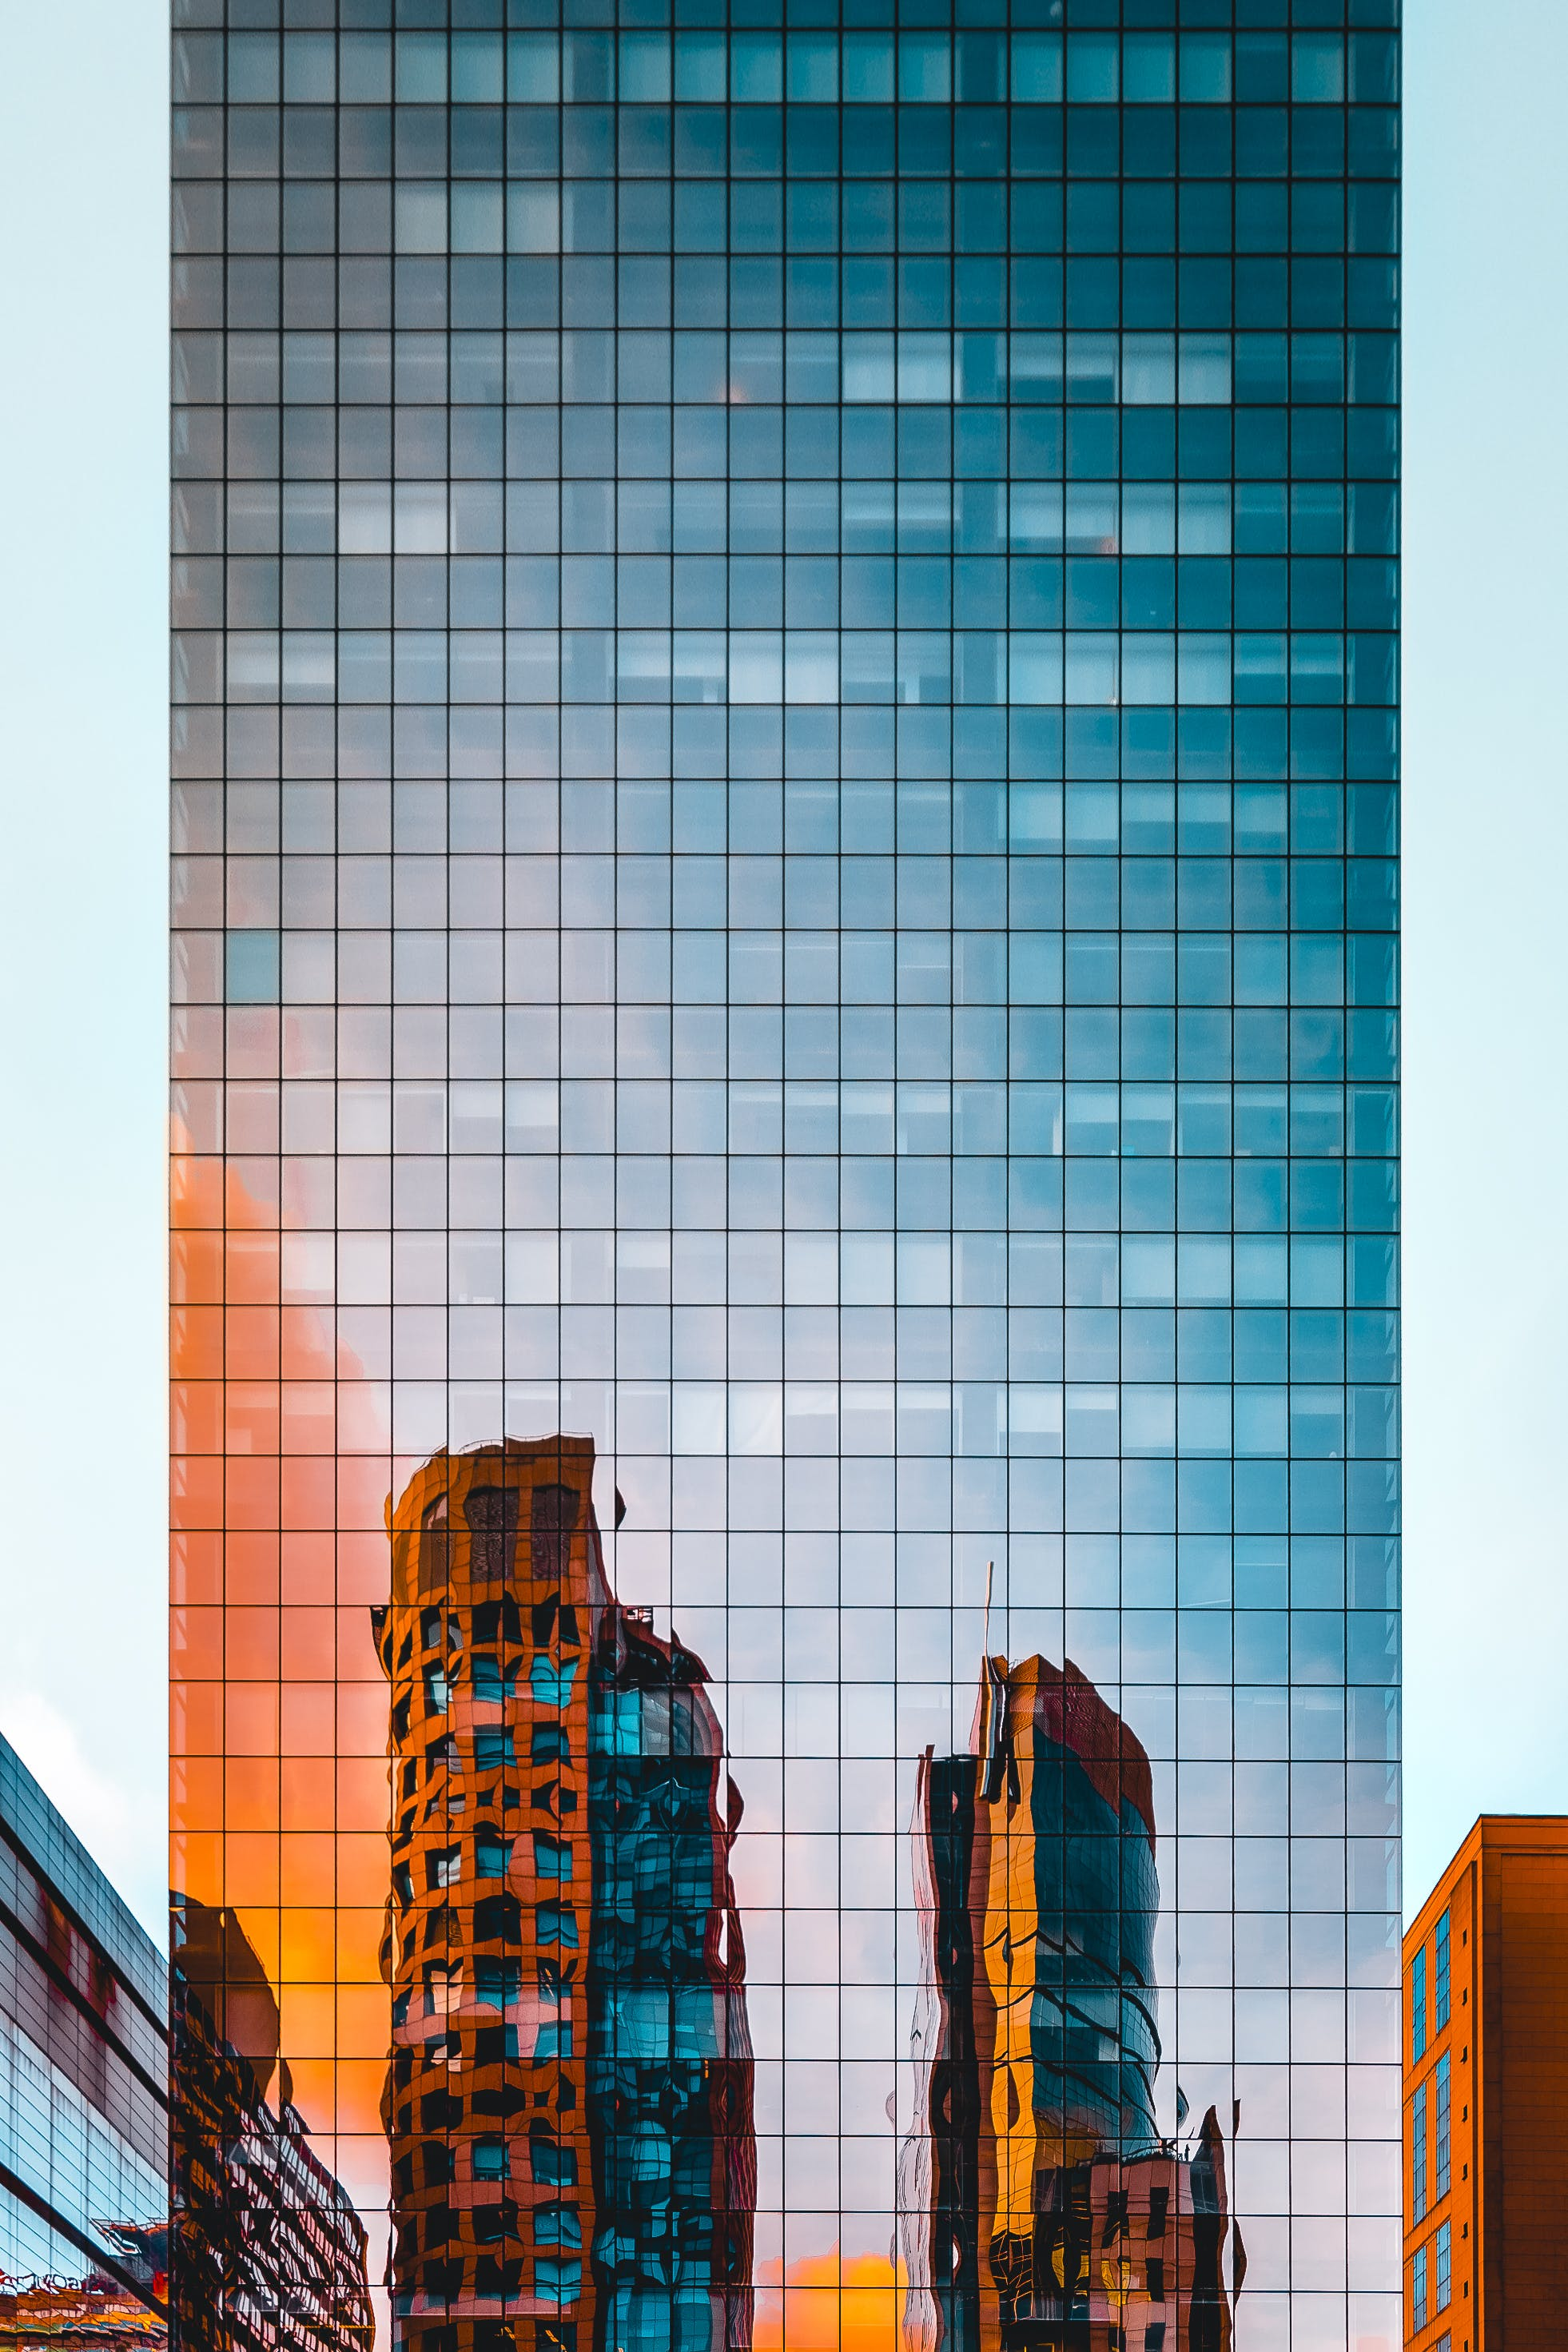 Mirror Facade of Tall Building